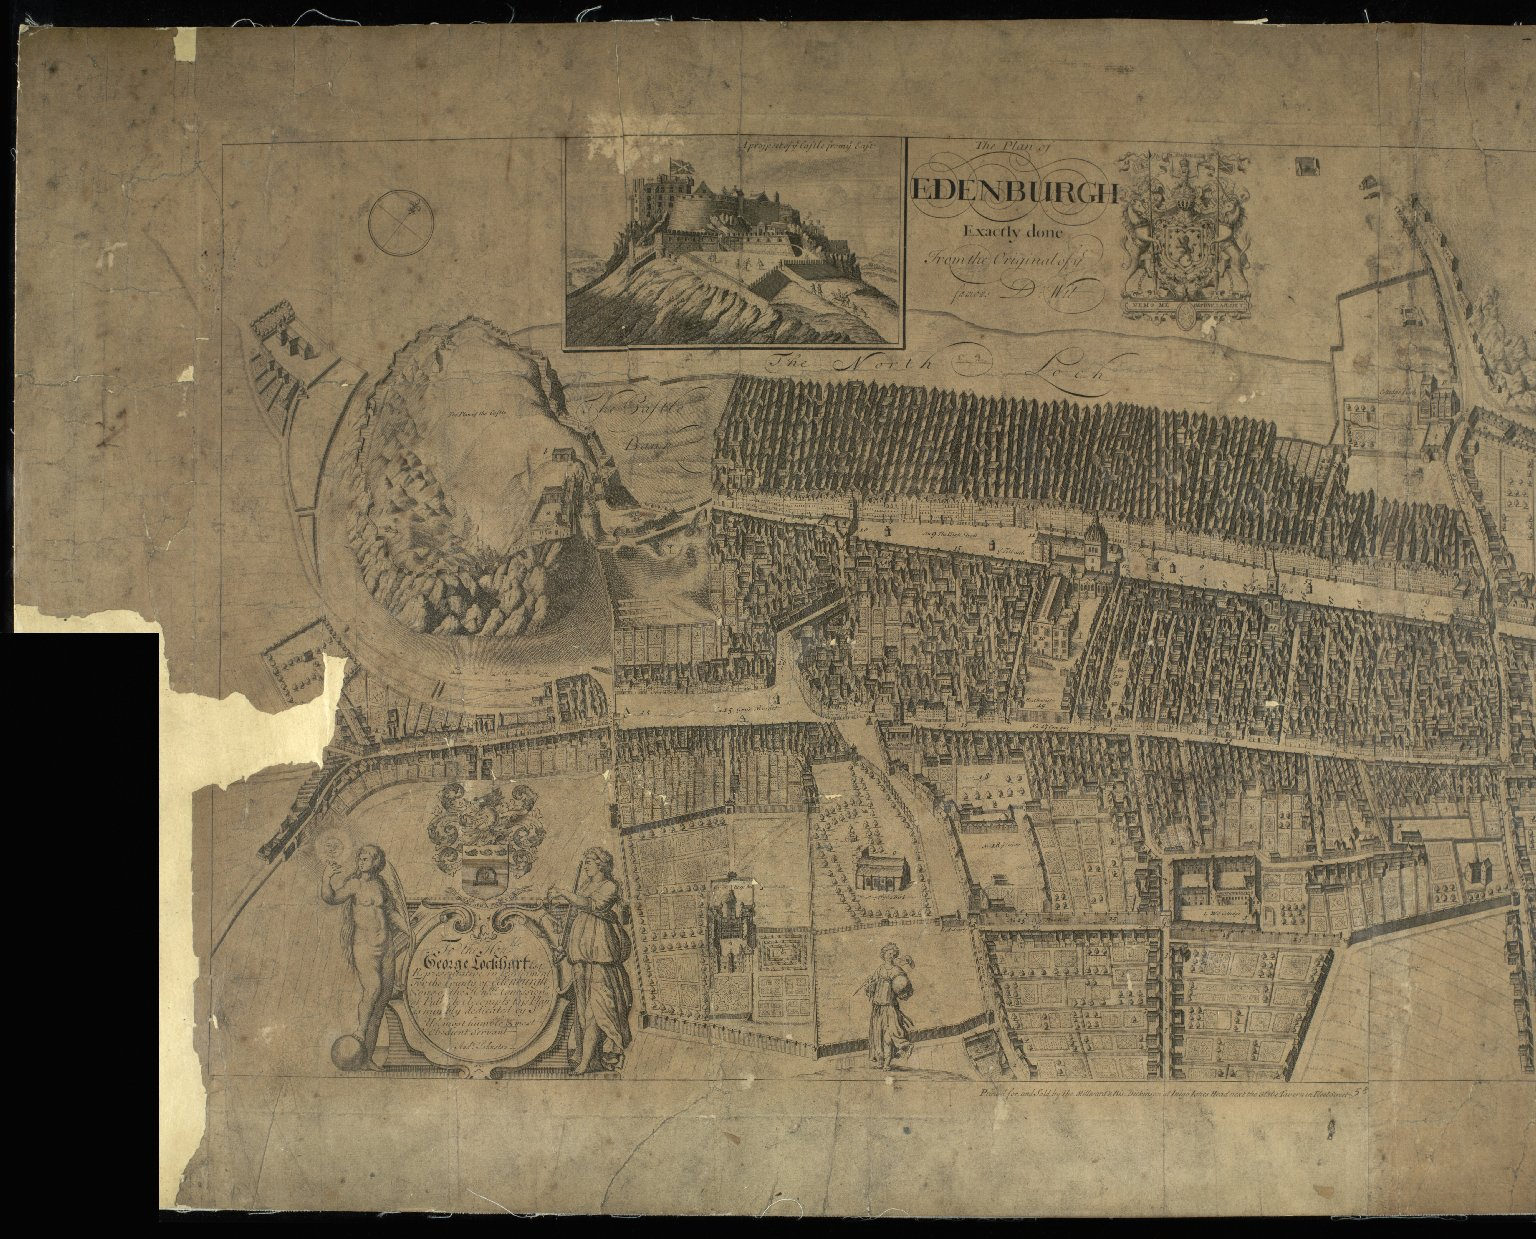 The Plan of Edenburgh Exactly done From the Original of ye famous D. Witt [1 of 2]